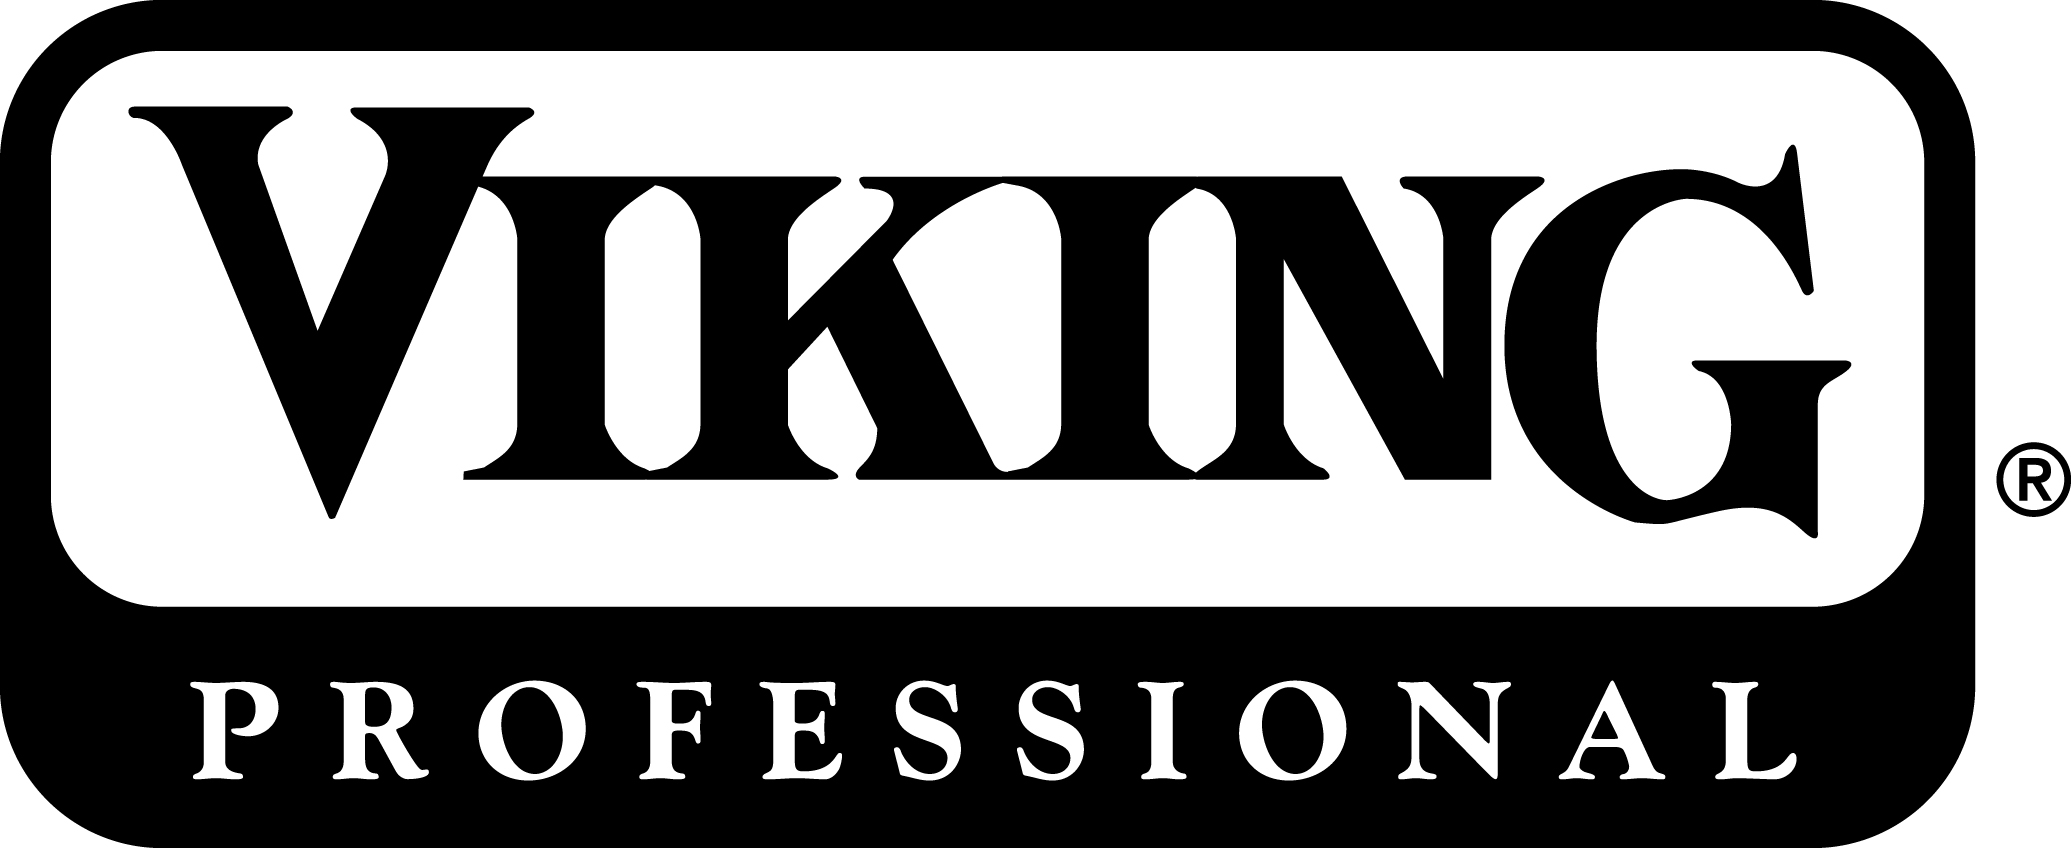 Viking Oven Cooker Repairs, Kenmore Oven Repair